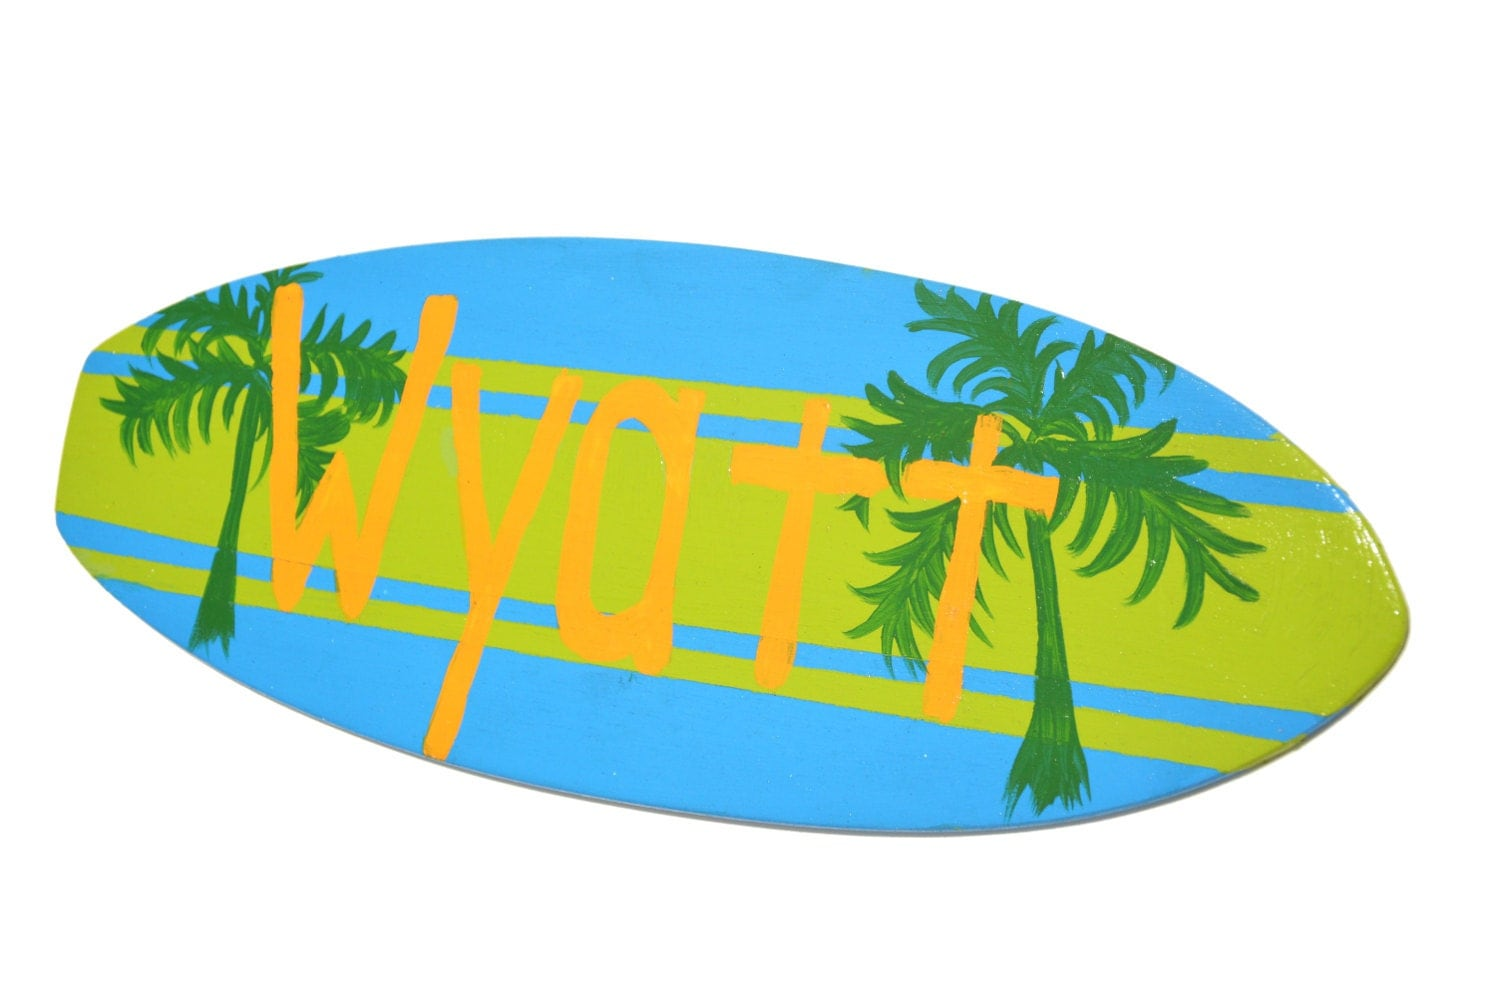 Funky Surf Board Wall Art Model - The Wall Art Decorations ...